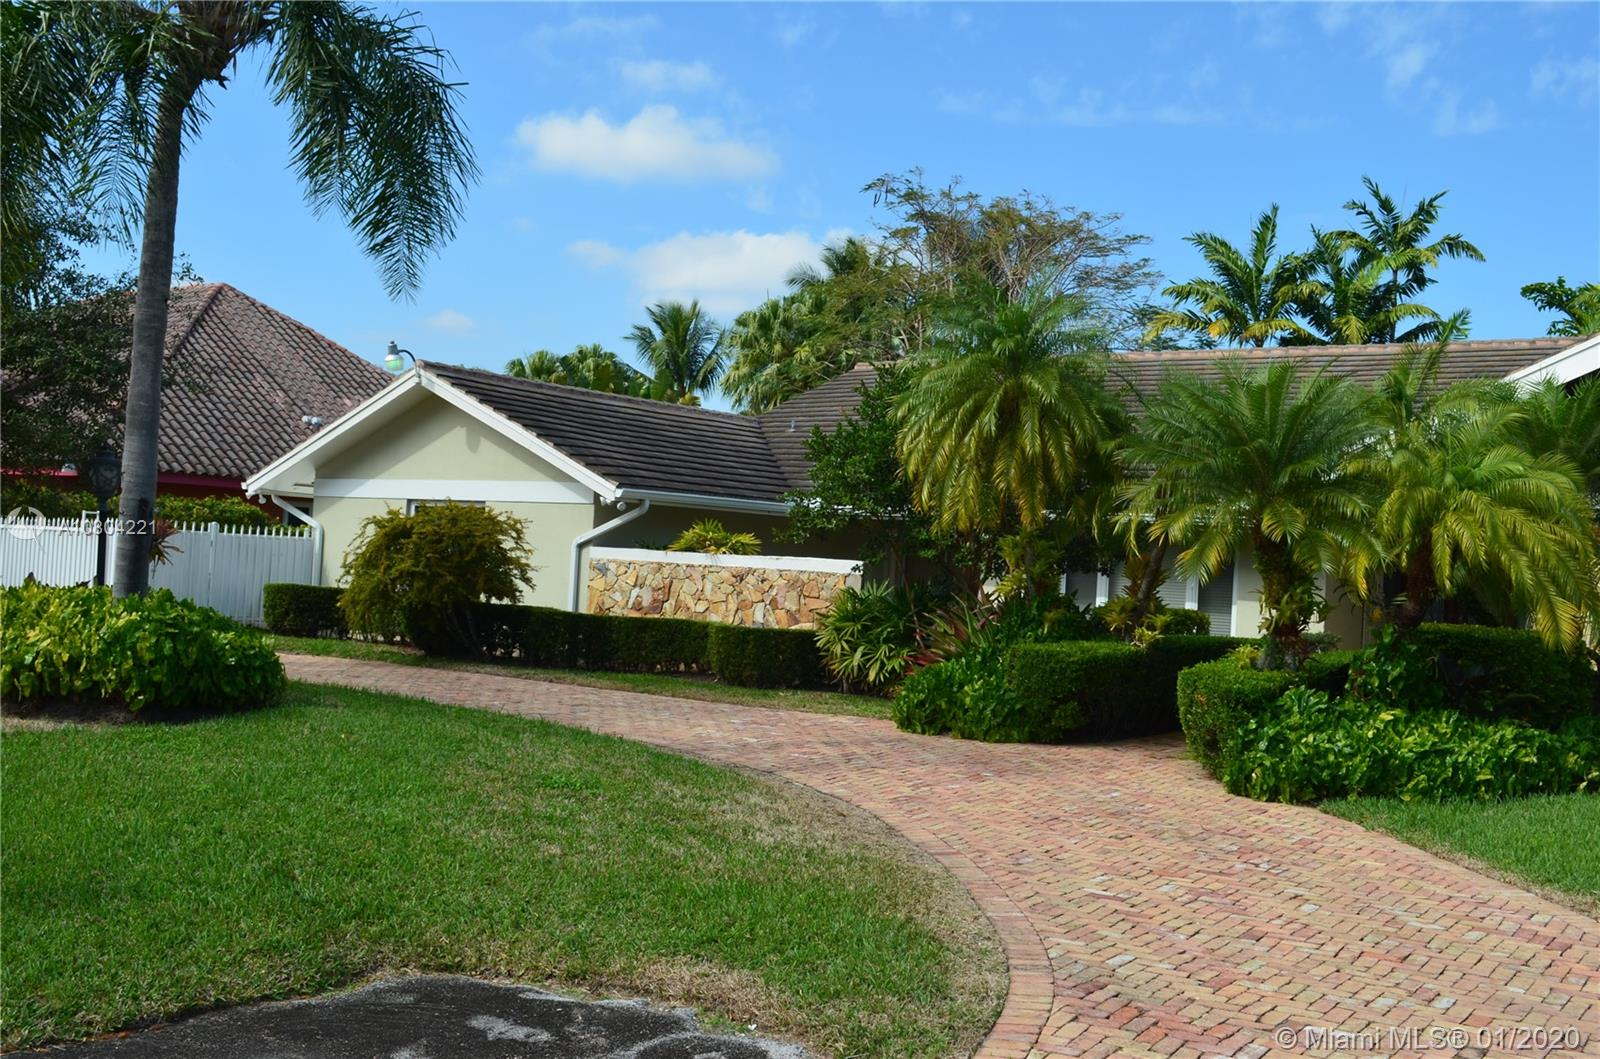 10361 SW 141st St, Miami, Florida 33176, 4 Bedrooms Bedrooms, ,3 BathroomsBathrooms,Residential,For Sale,10361 SW 141st St,A10804221